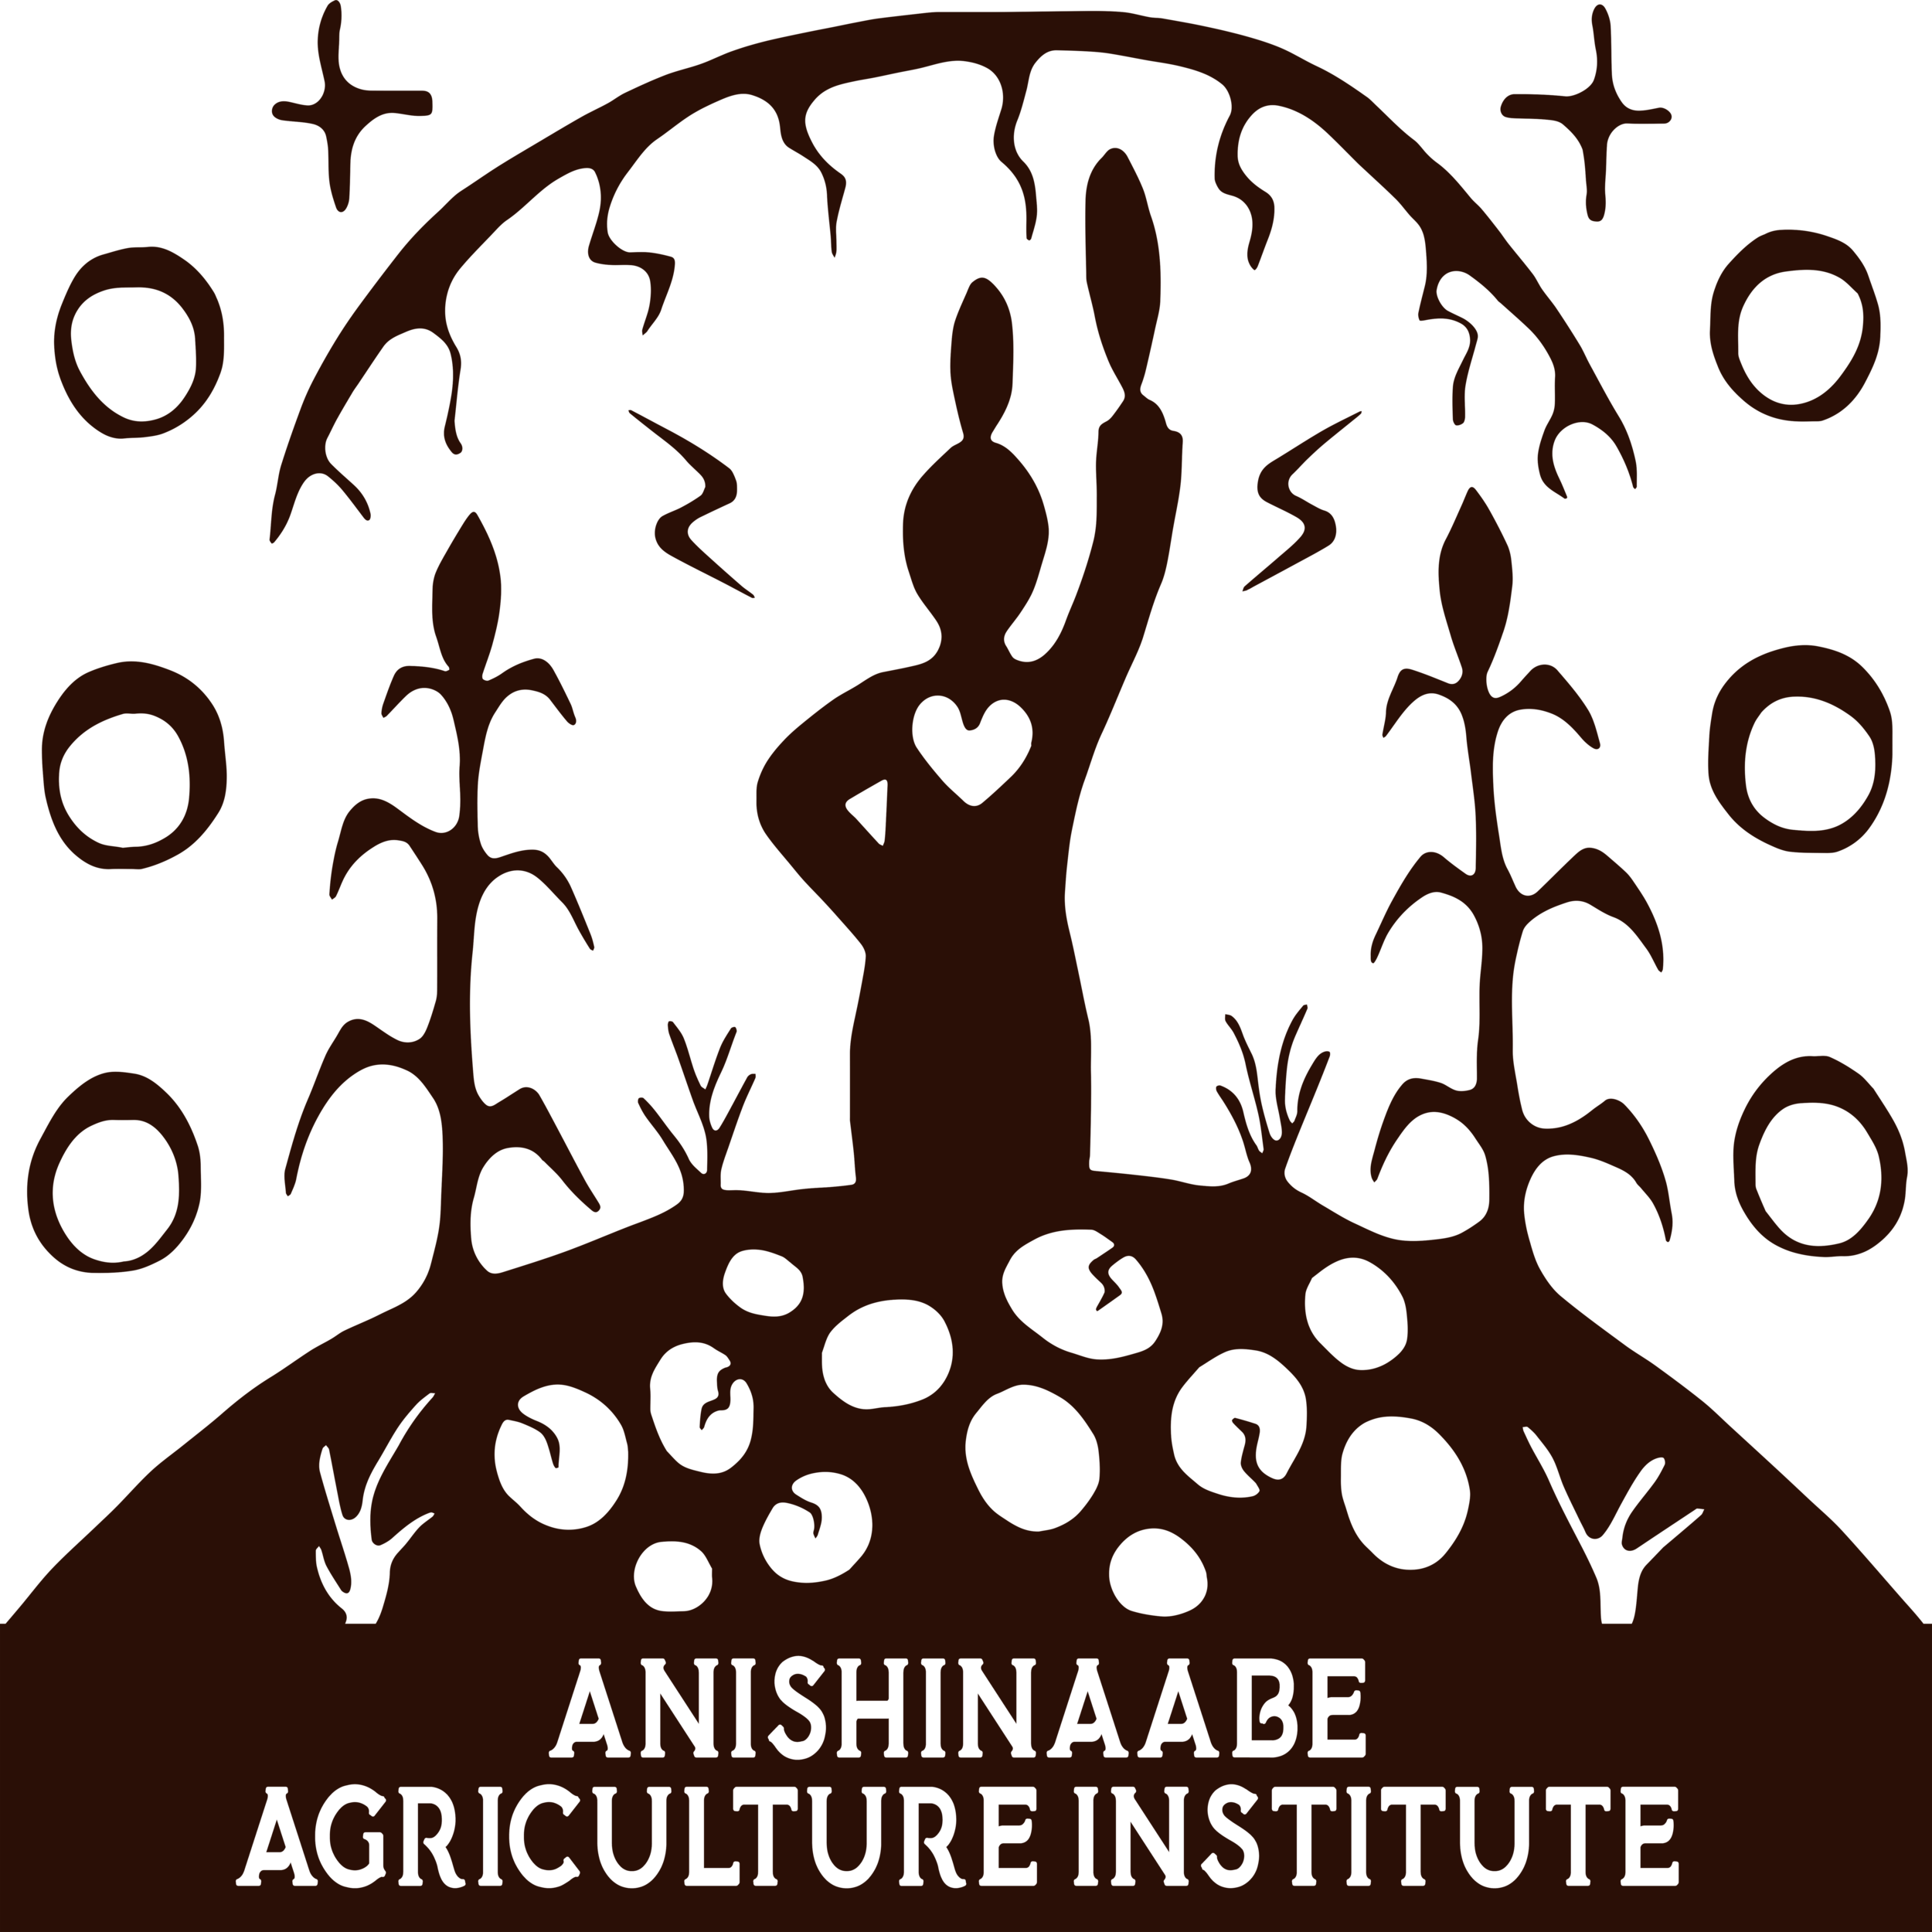 Anishinaabe Agriculture Institute is a non profit organization. - The Anishinaabe Agricultural Institute is working to restore agro-biodiversity, through restoring local food systems, hemp, and traditional heritage varieties. We are focused on regenerative and reduced petroleum agriculture.